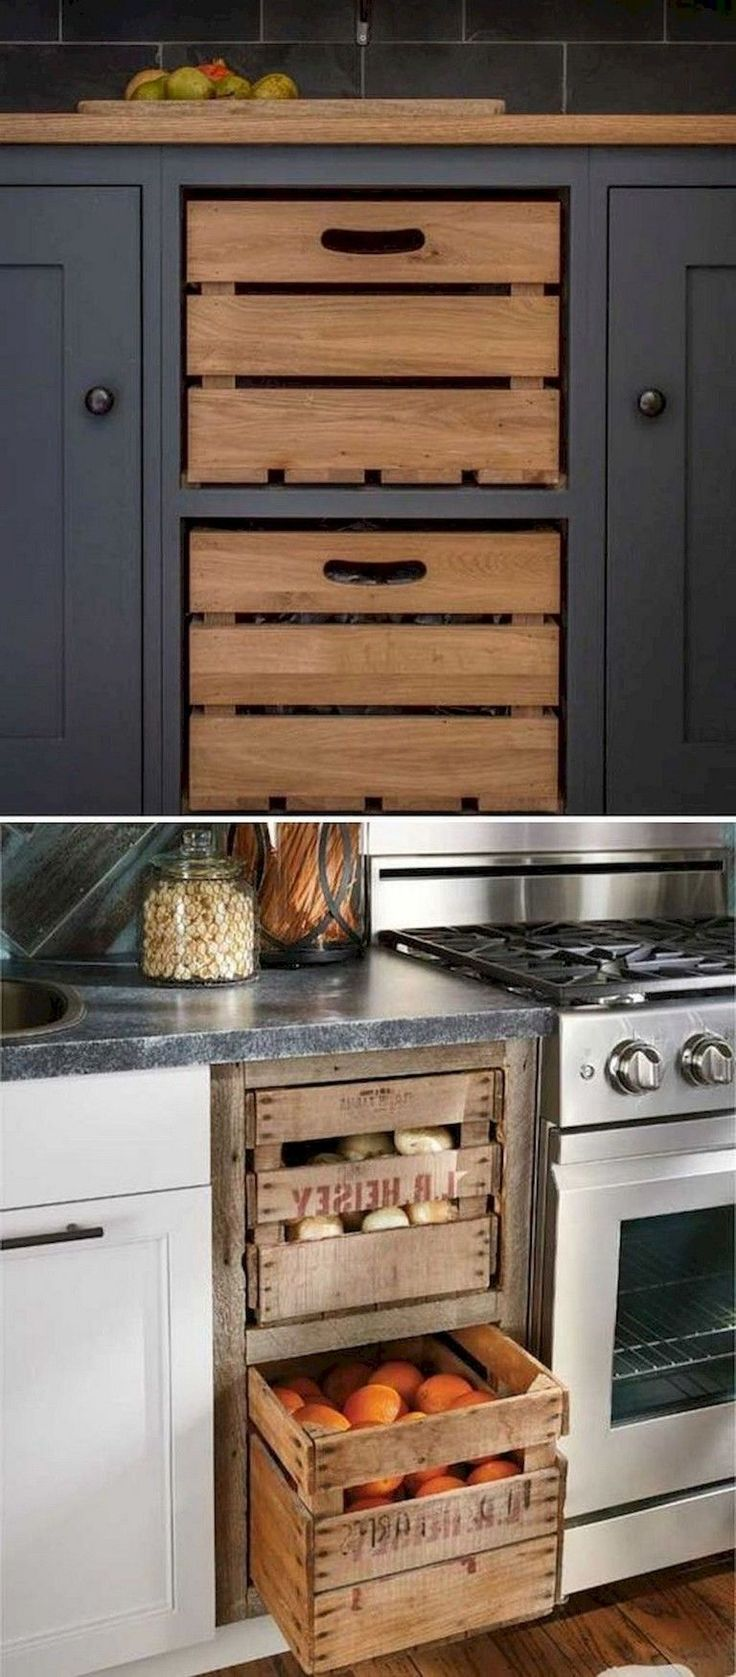 Kitchen Accessories You Didn't Know You Needed – Interior Design Ideas & Home Decorating Inspiration – moercar